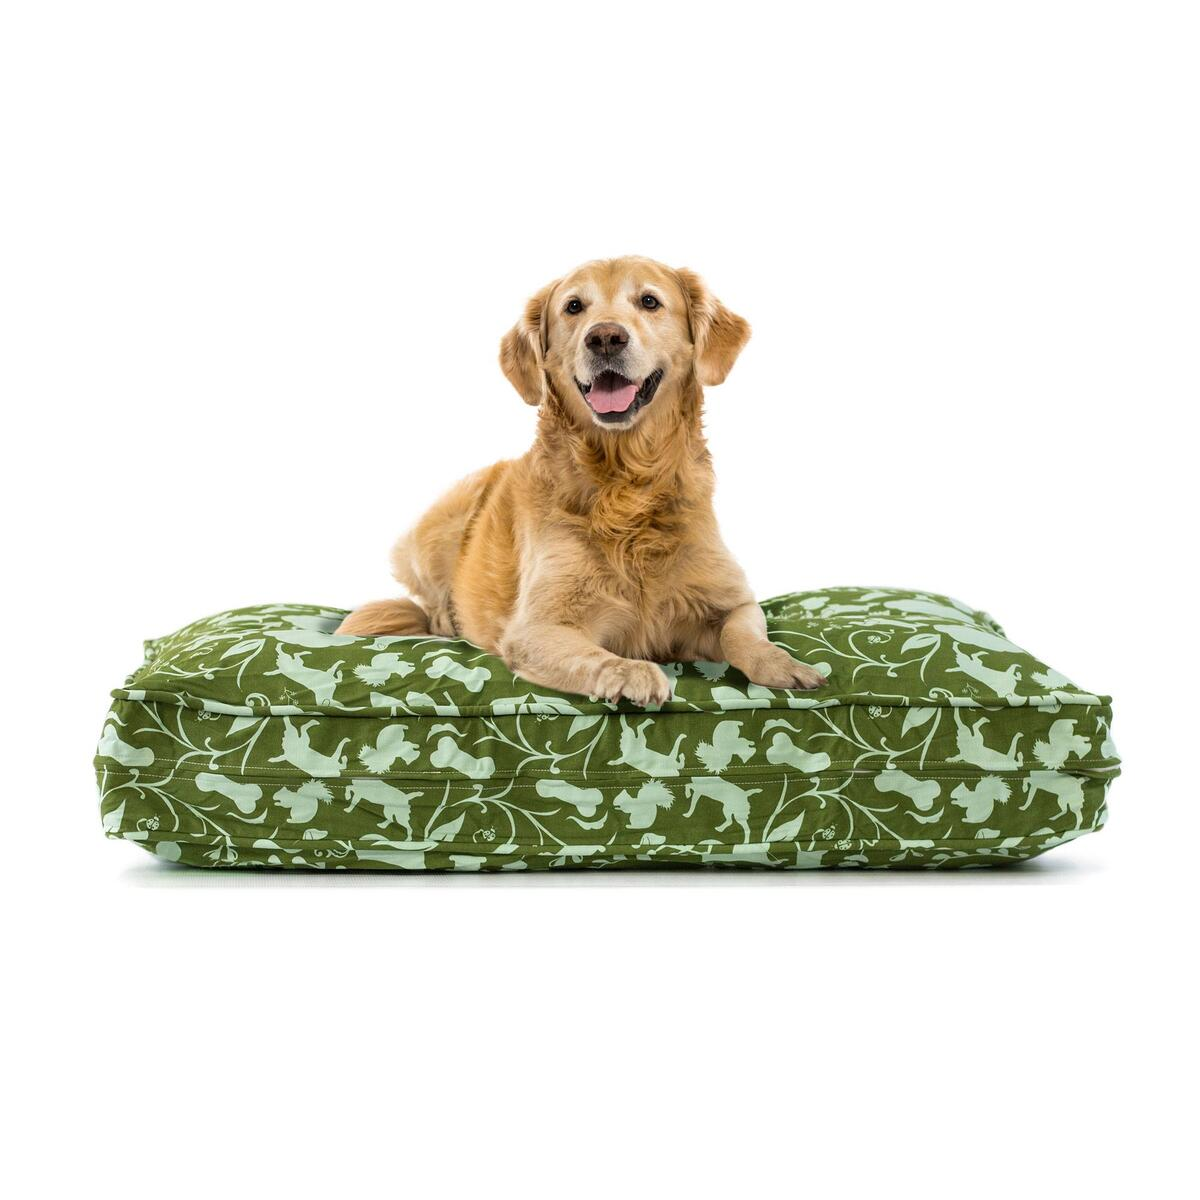 Deluxe Cluster Fiber Filling Pet Beds Small Dog Days Color Only